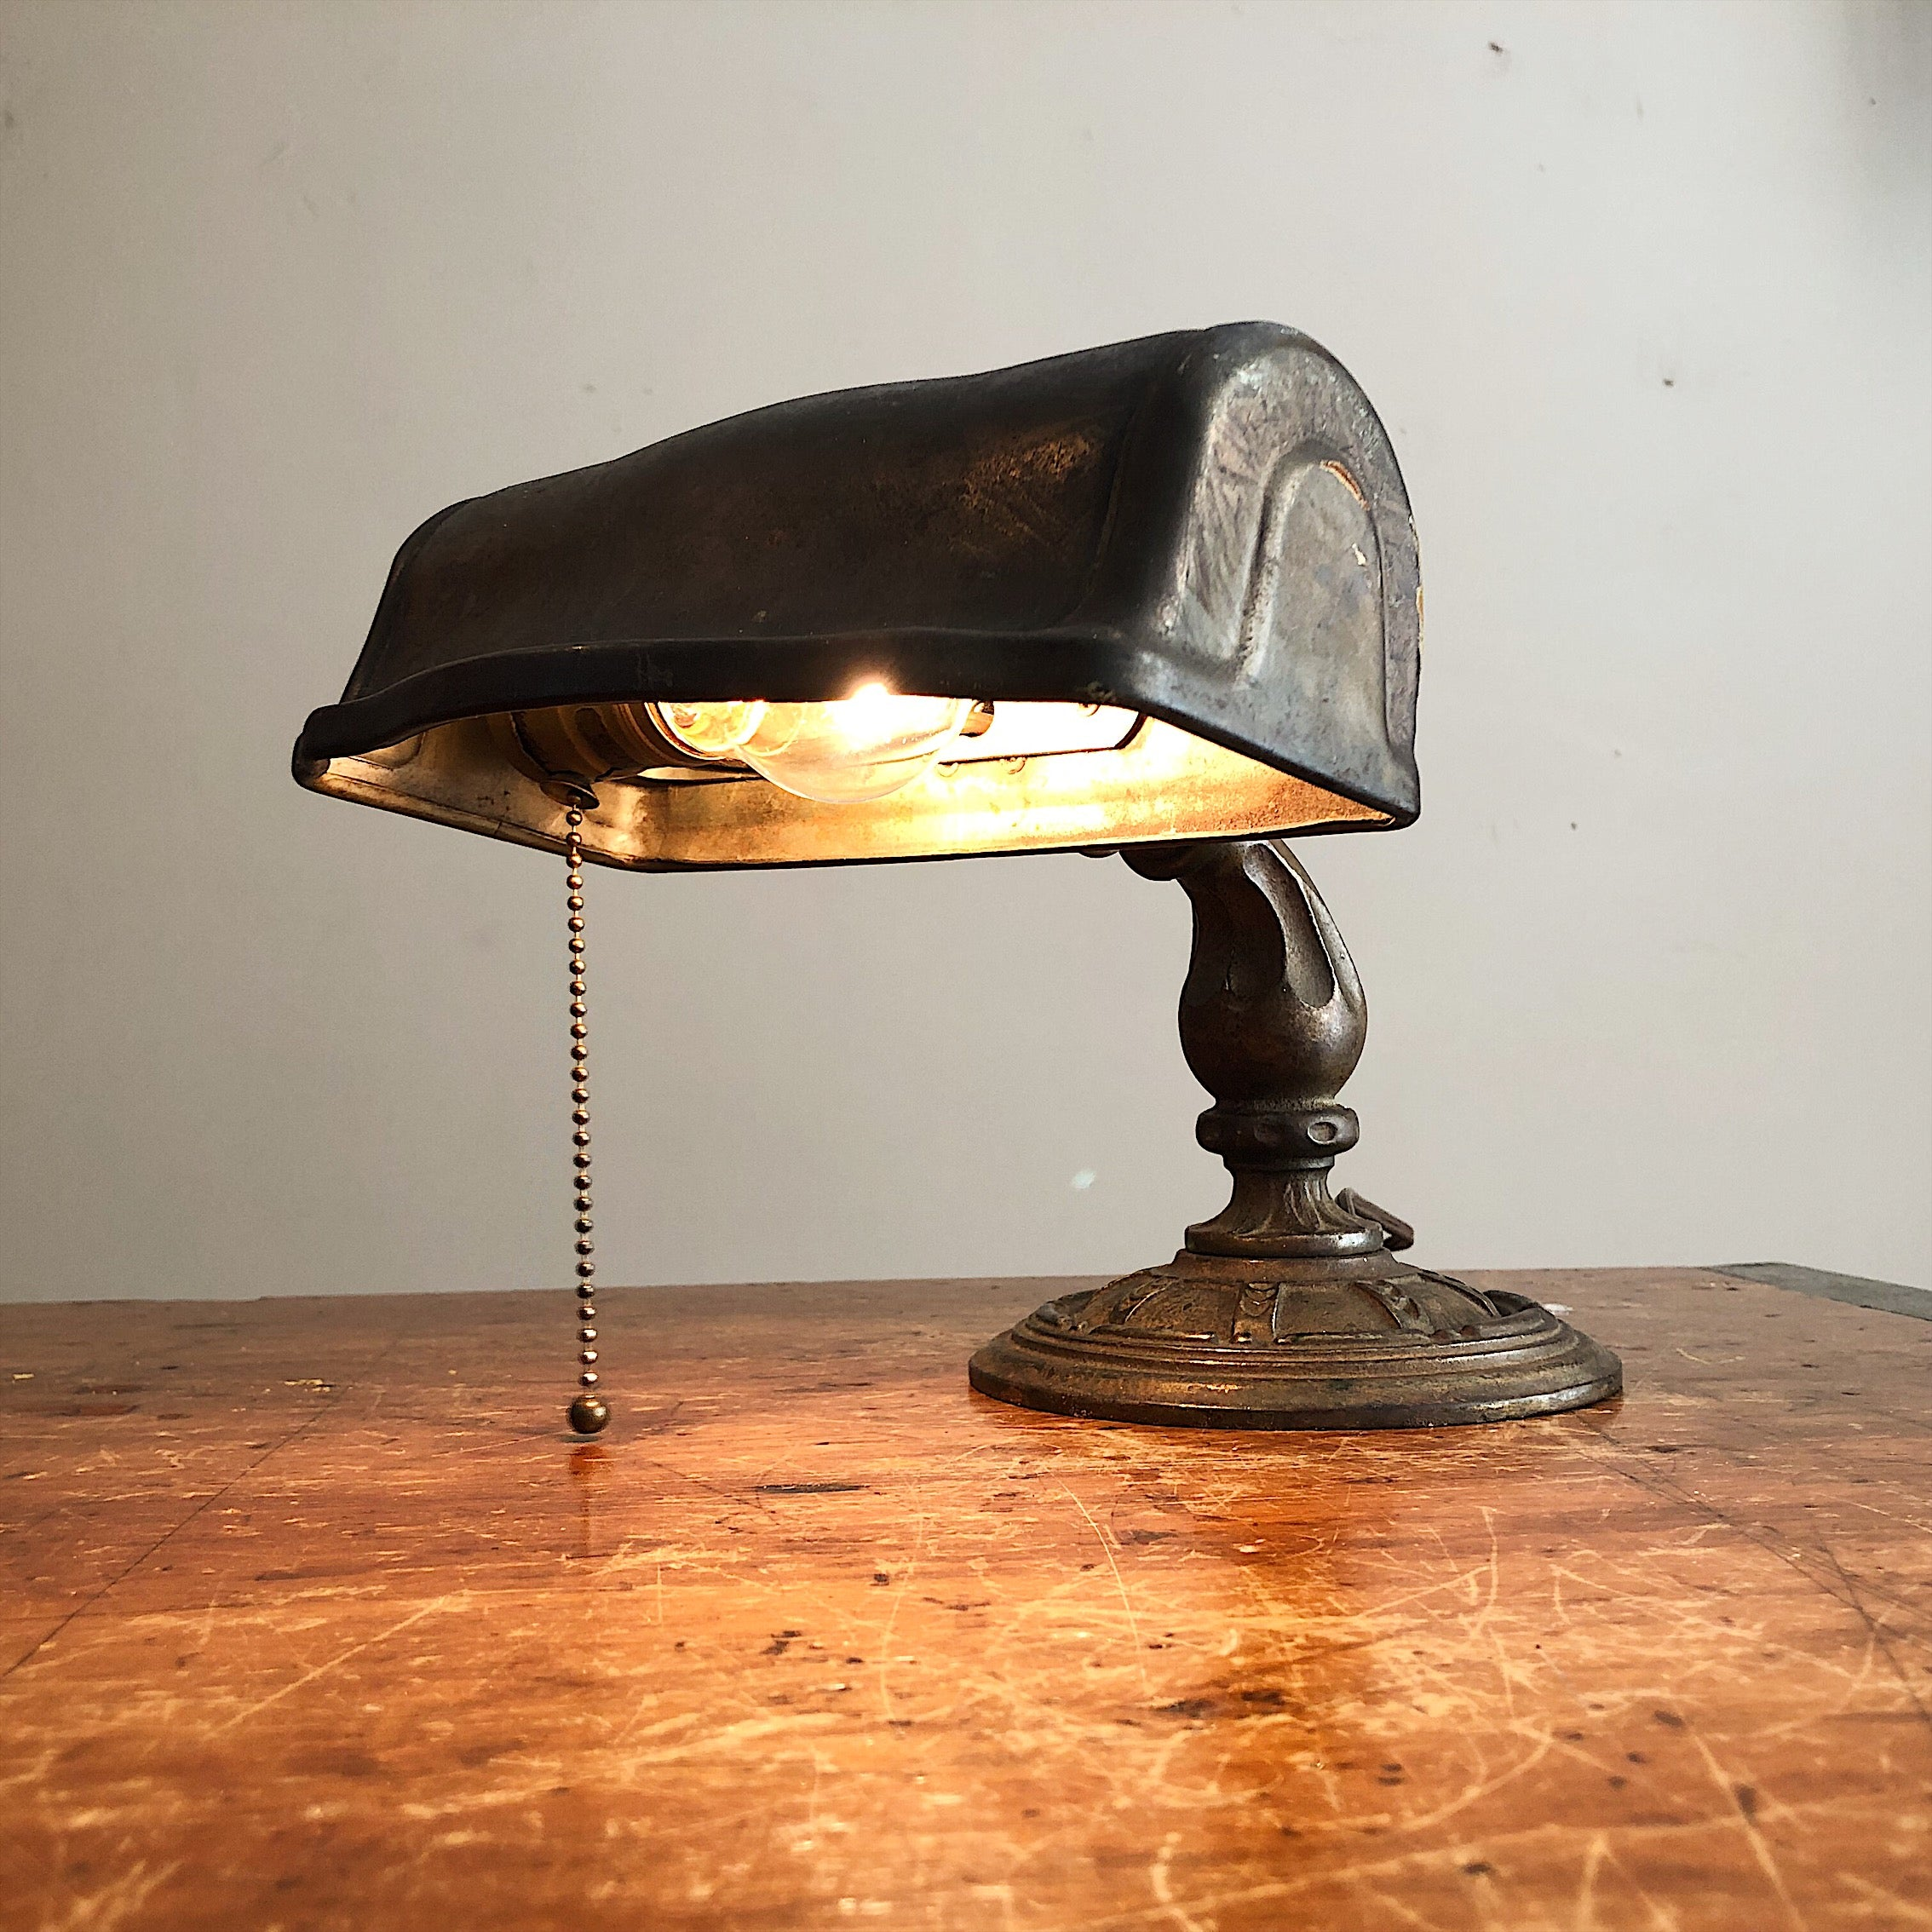 Rare Aladdin Lamp with Ornate Cast Iron Base - Antique Industrial Decor - Vintage - 1920s Table Lamp